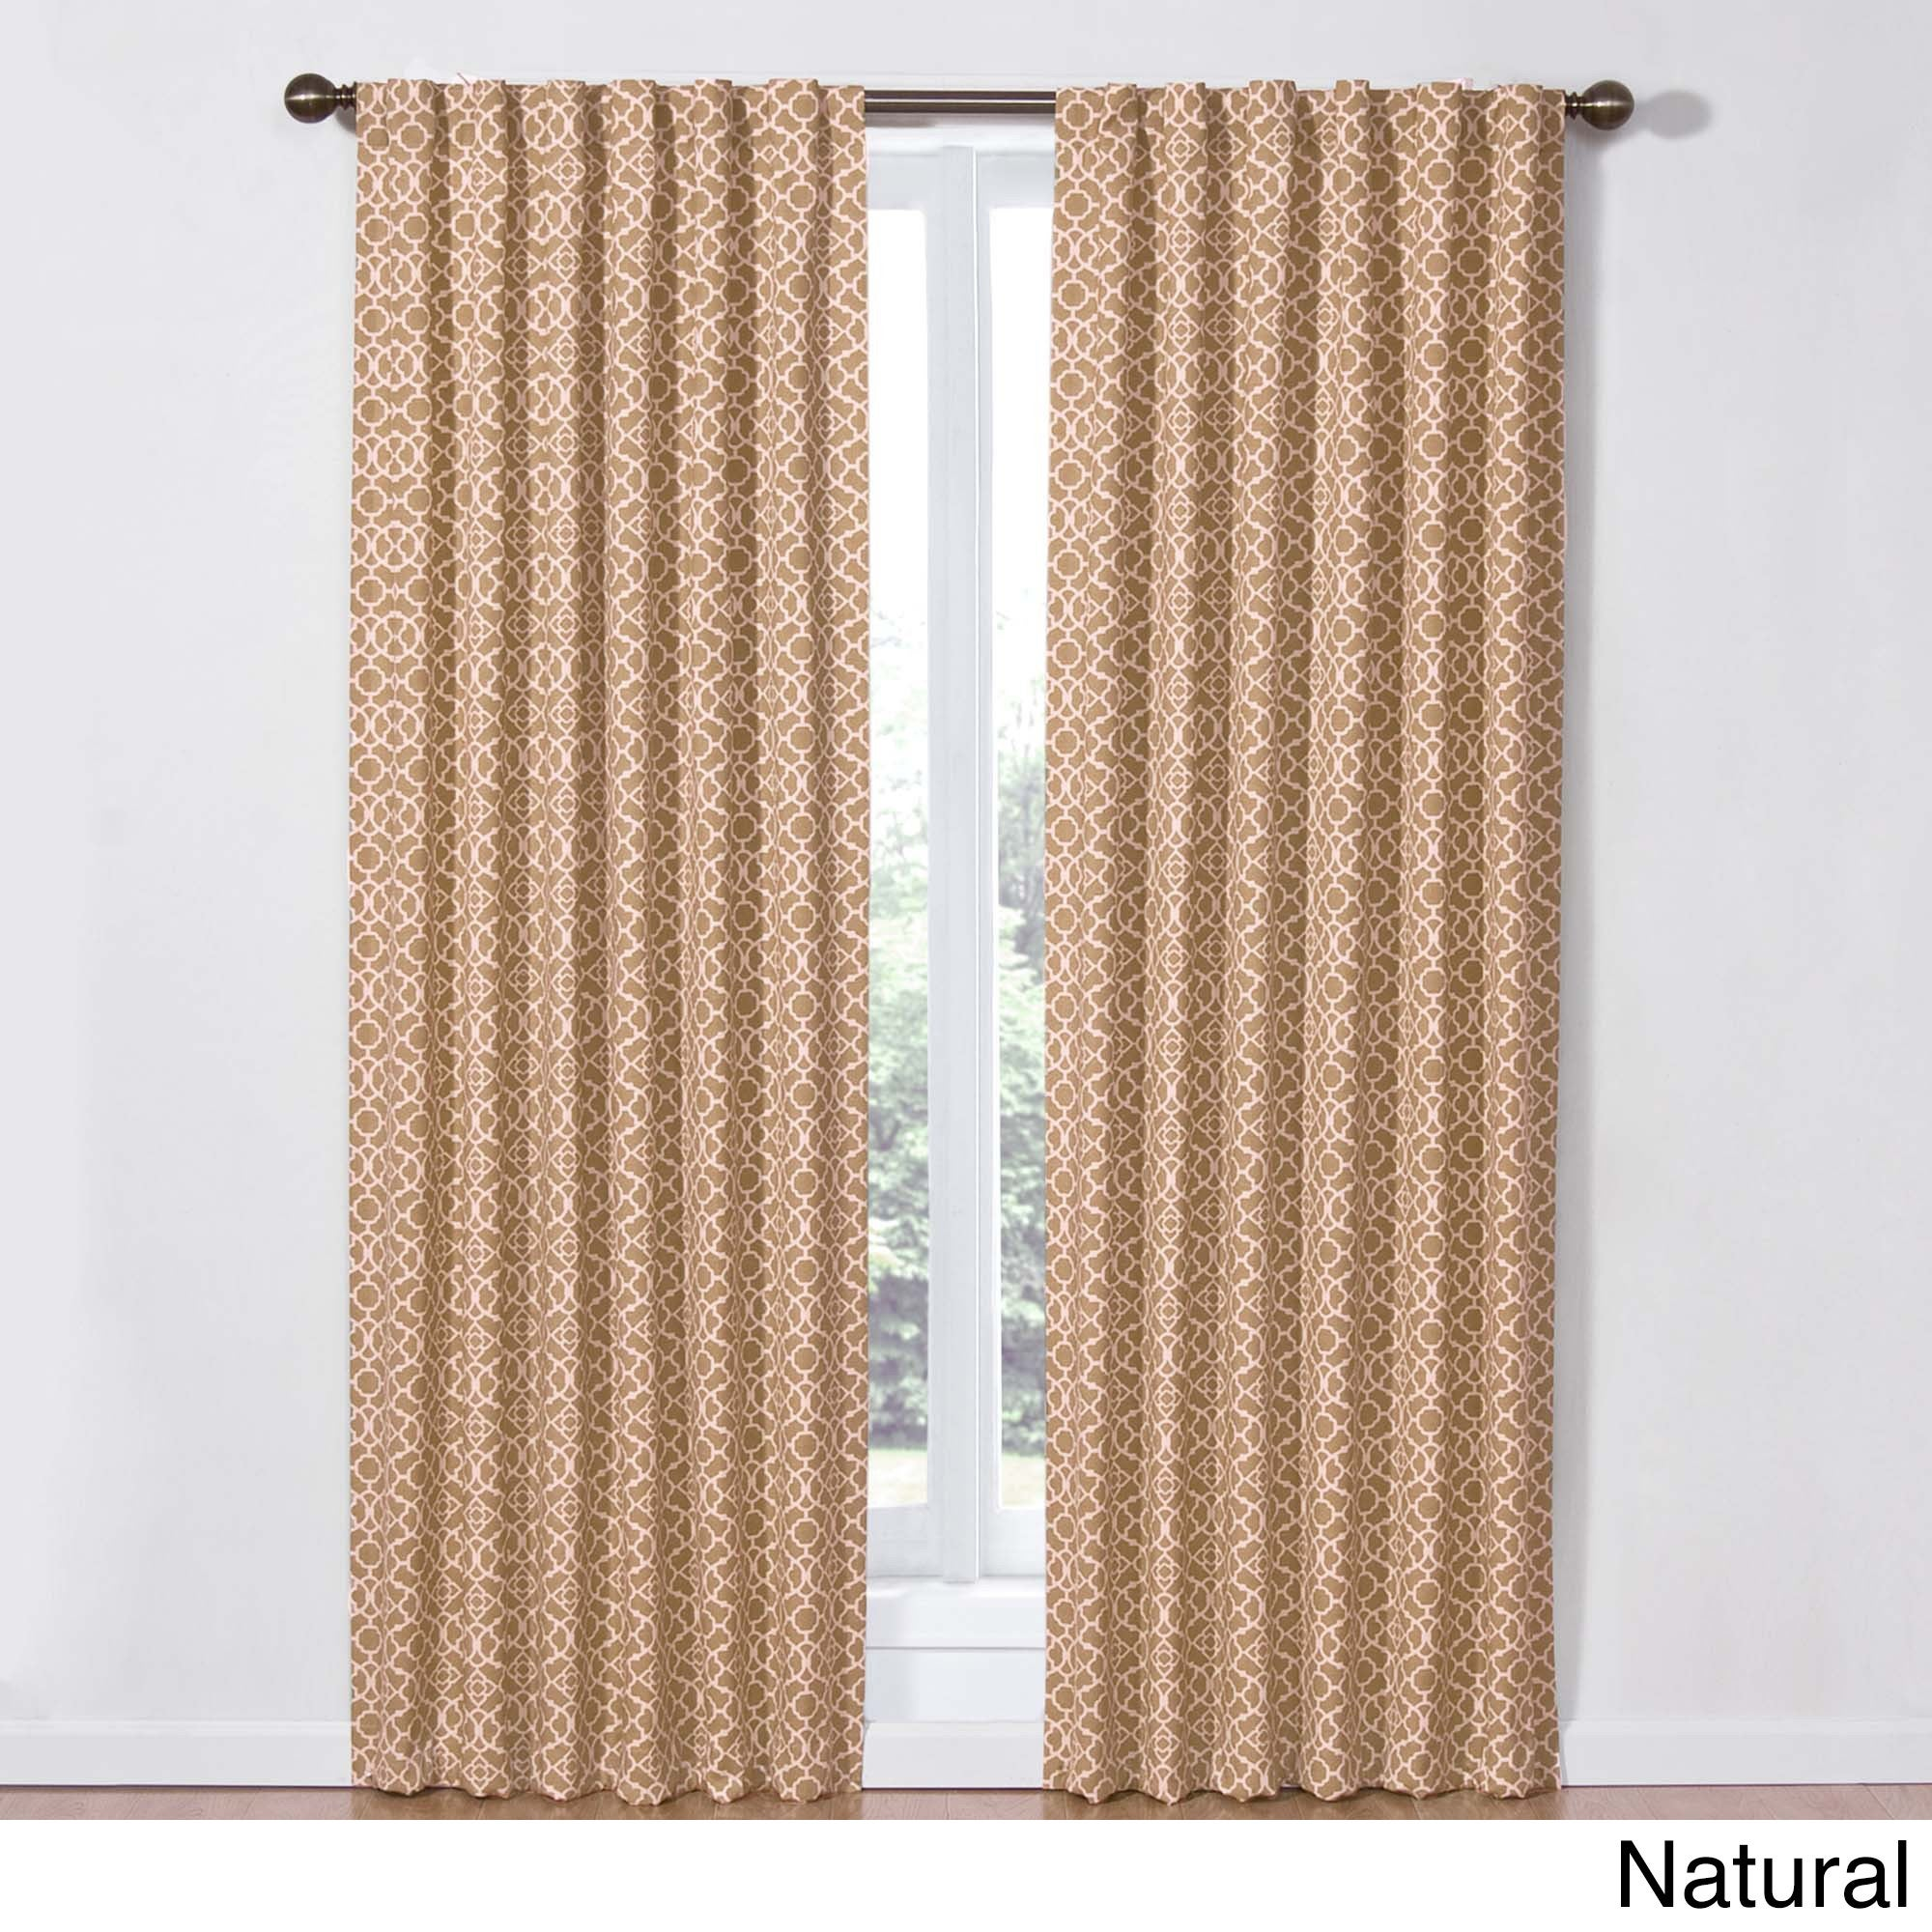 superior Waverly Lovely Lattice Curtain Part - 4: Shop Waverly Lovely Lattice Rod-Pocket Curtain Panel with Tieback - Free  Shipping On Orders Over $45 - Overstock.com - 11003173